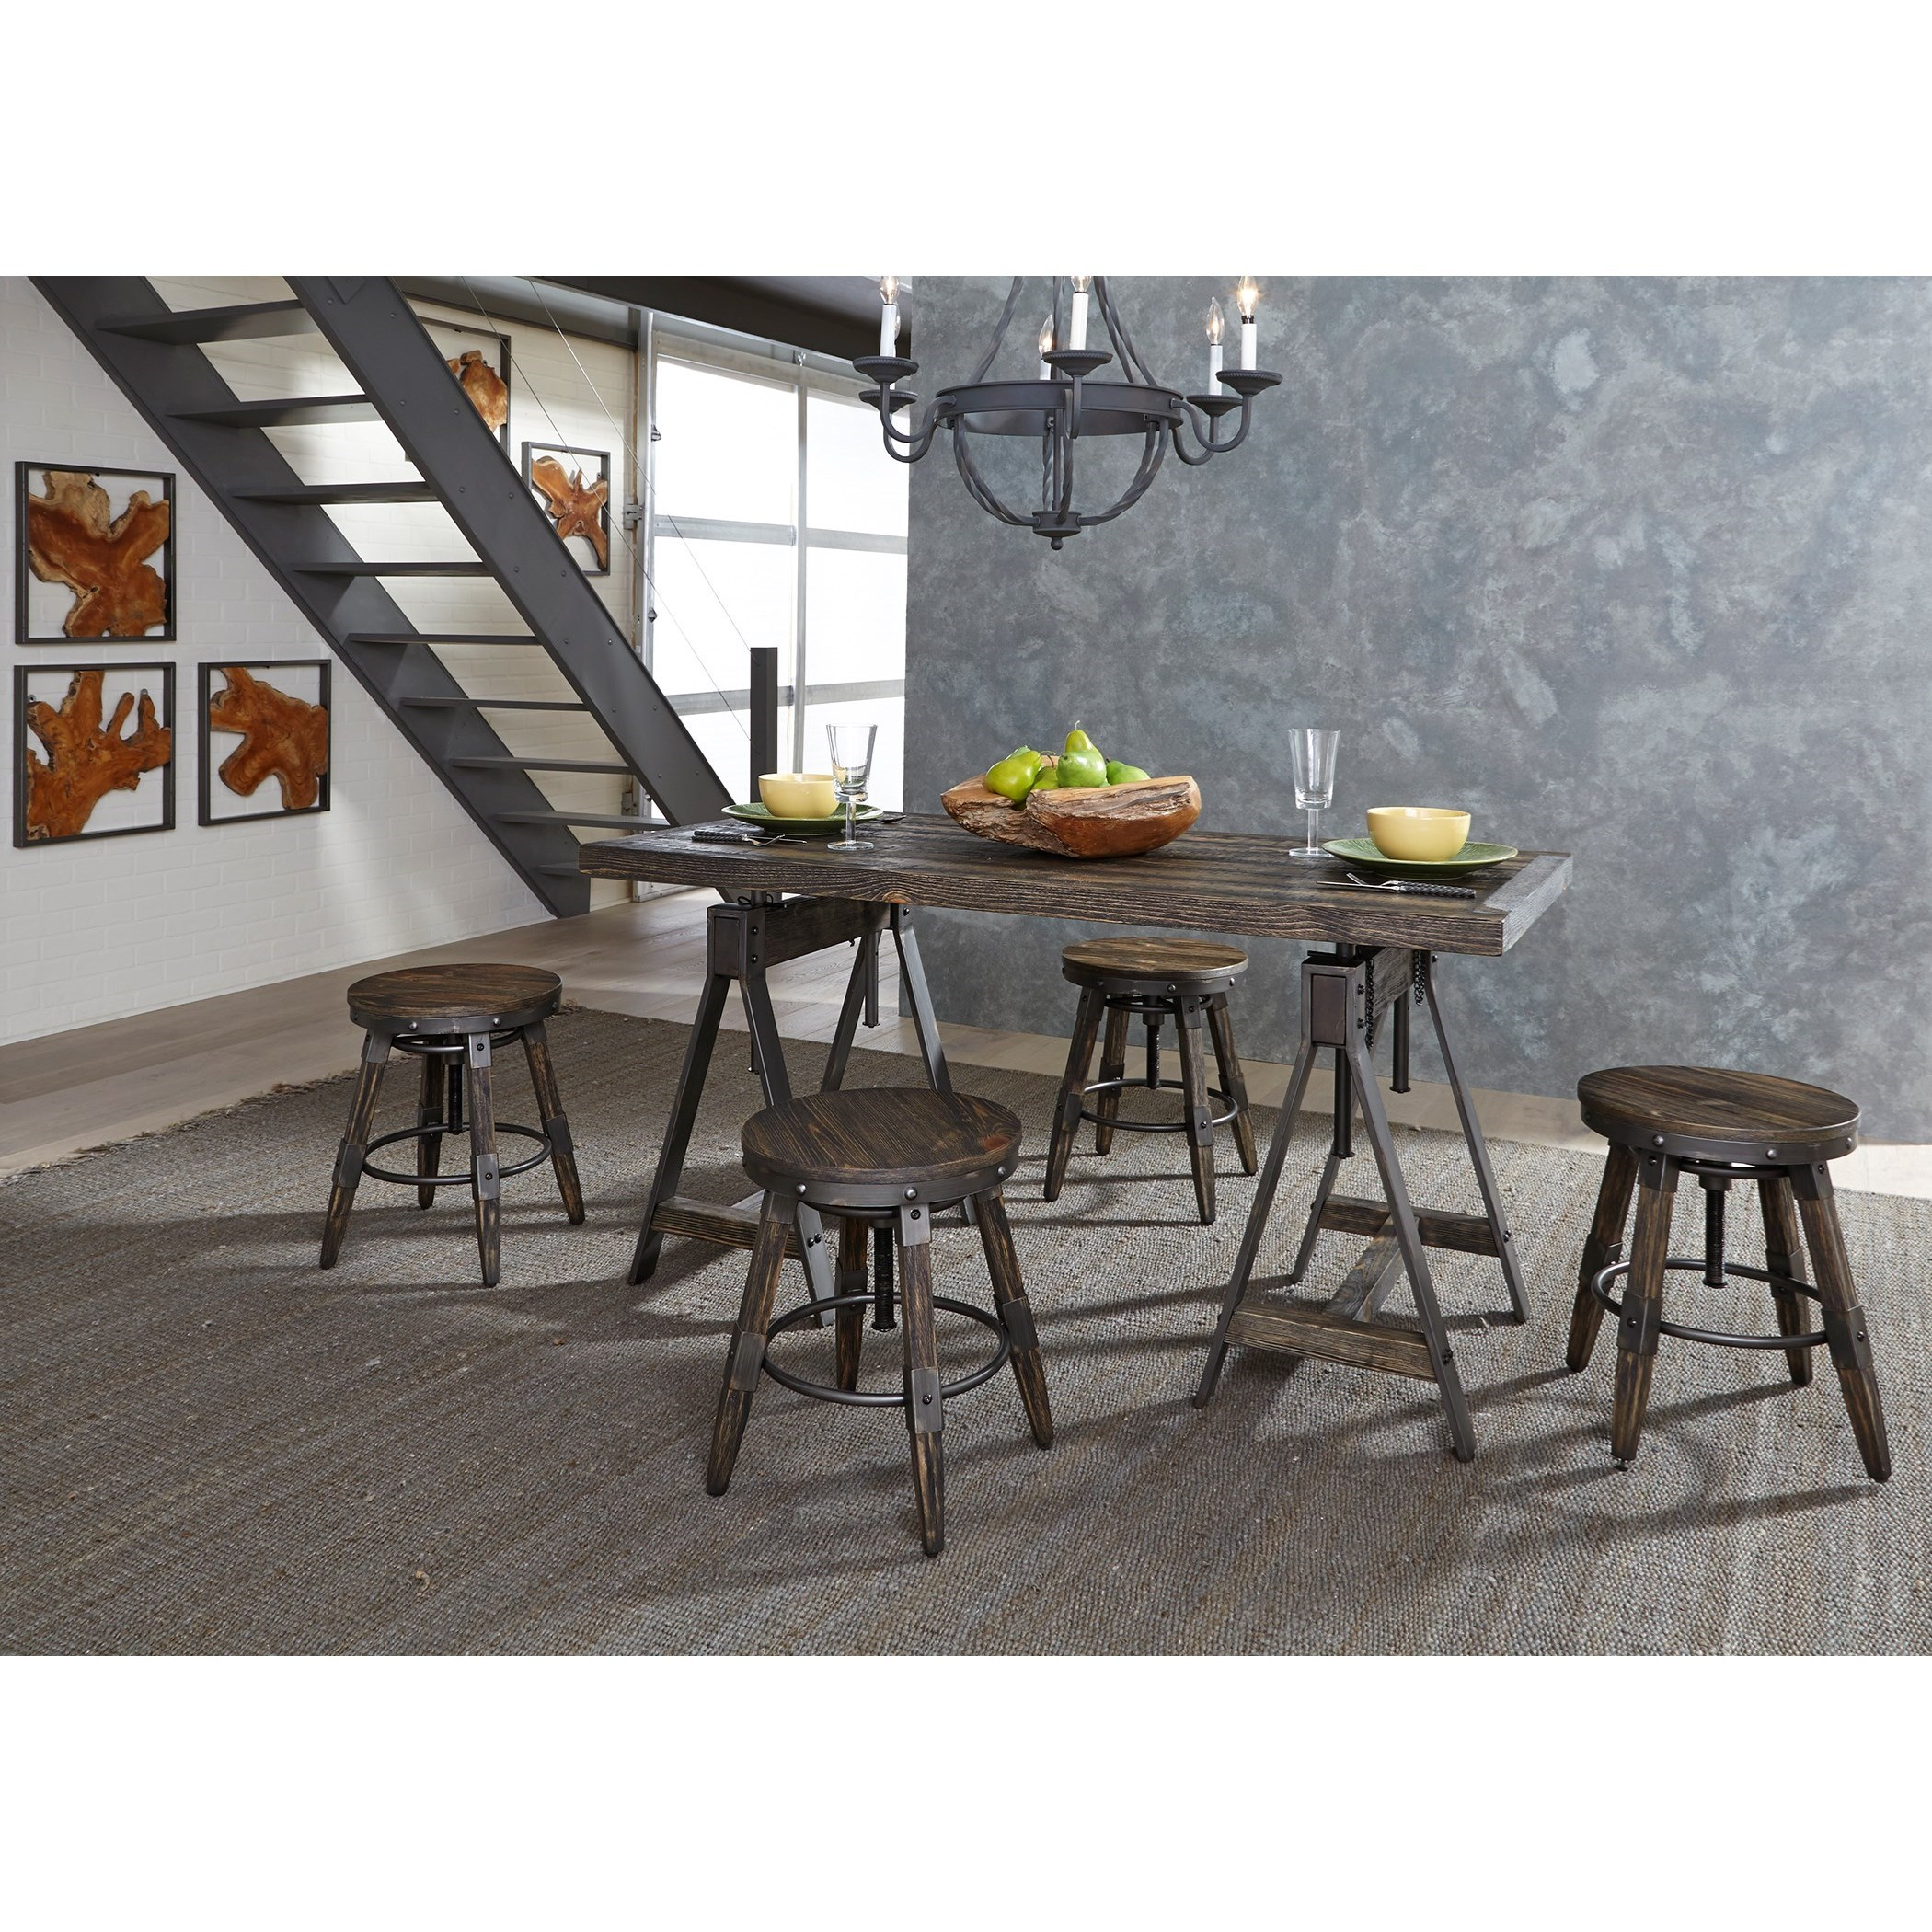 Adjustable Height Table and Stool Set